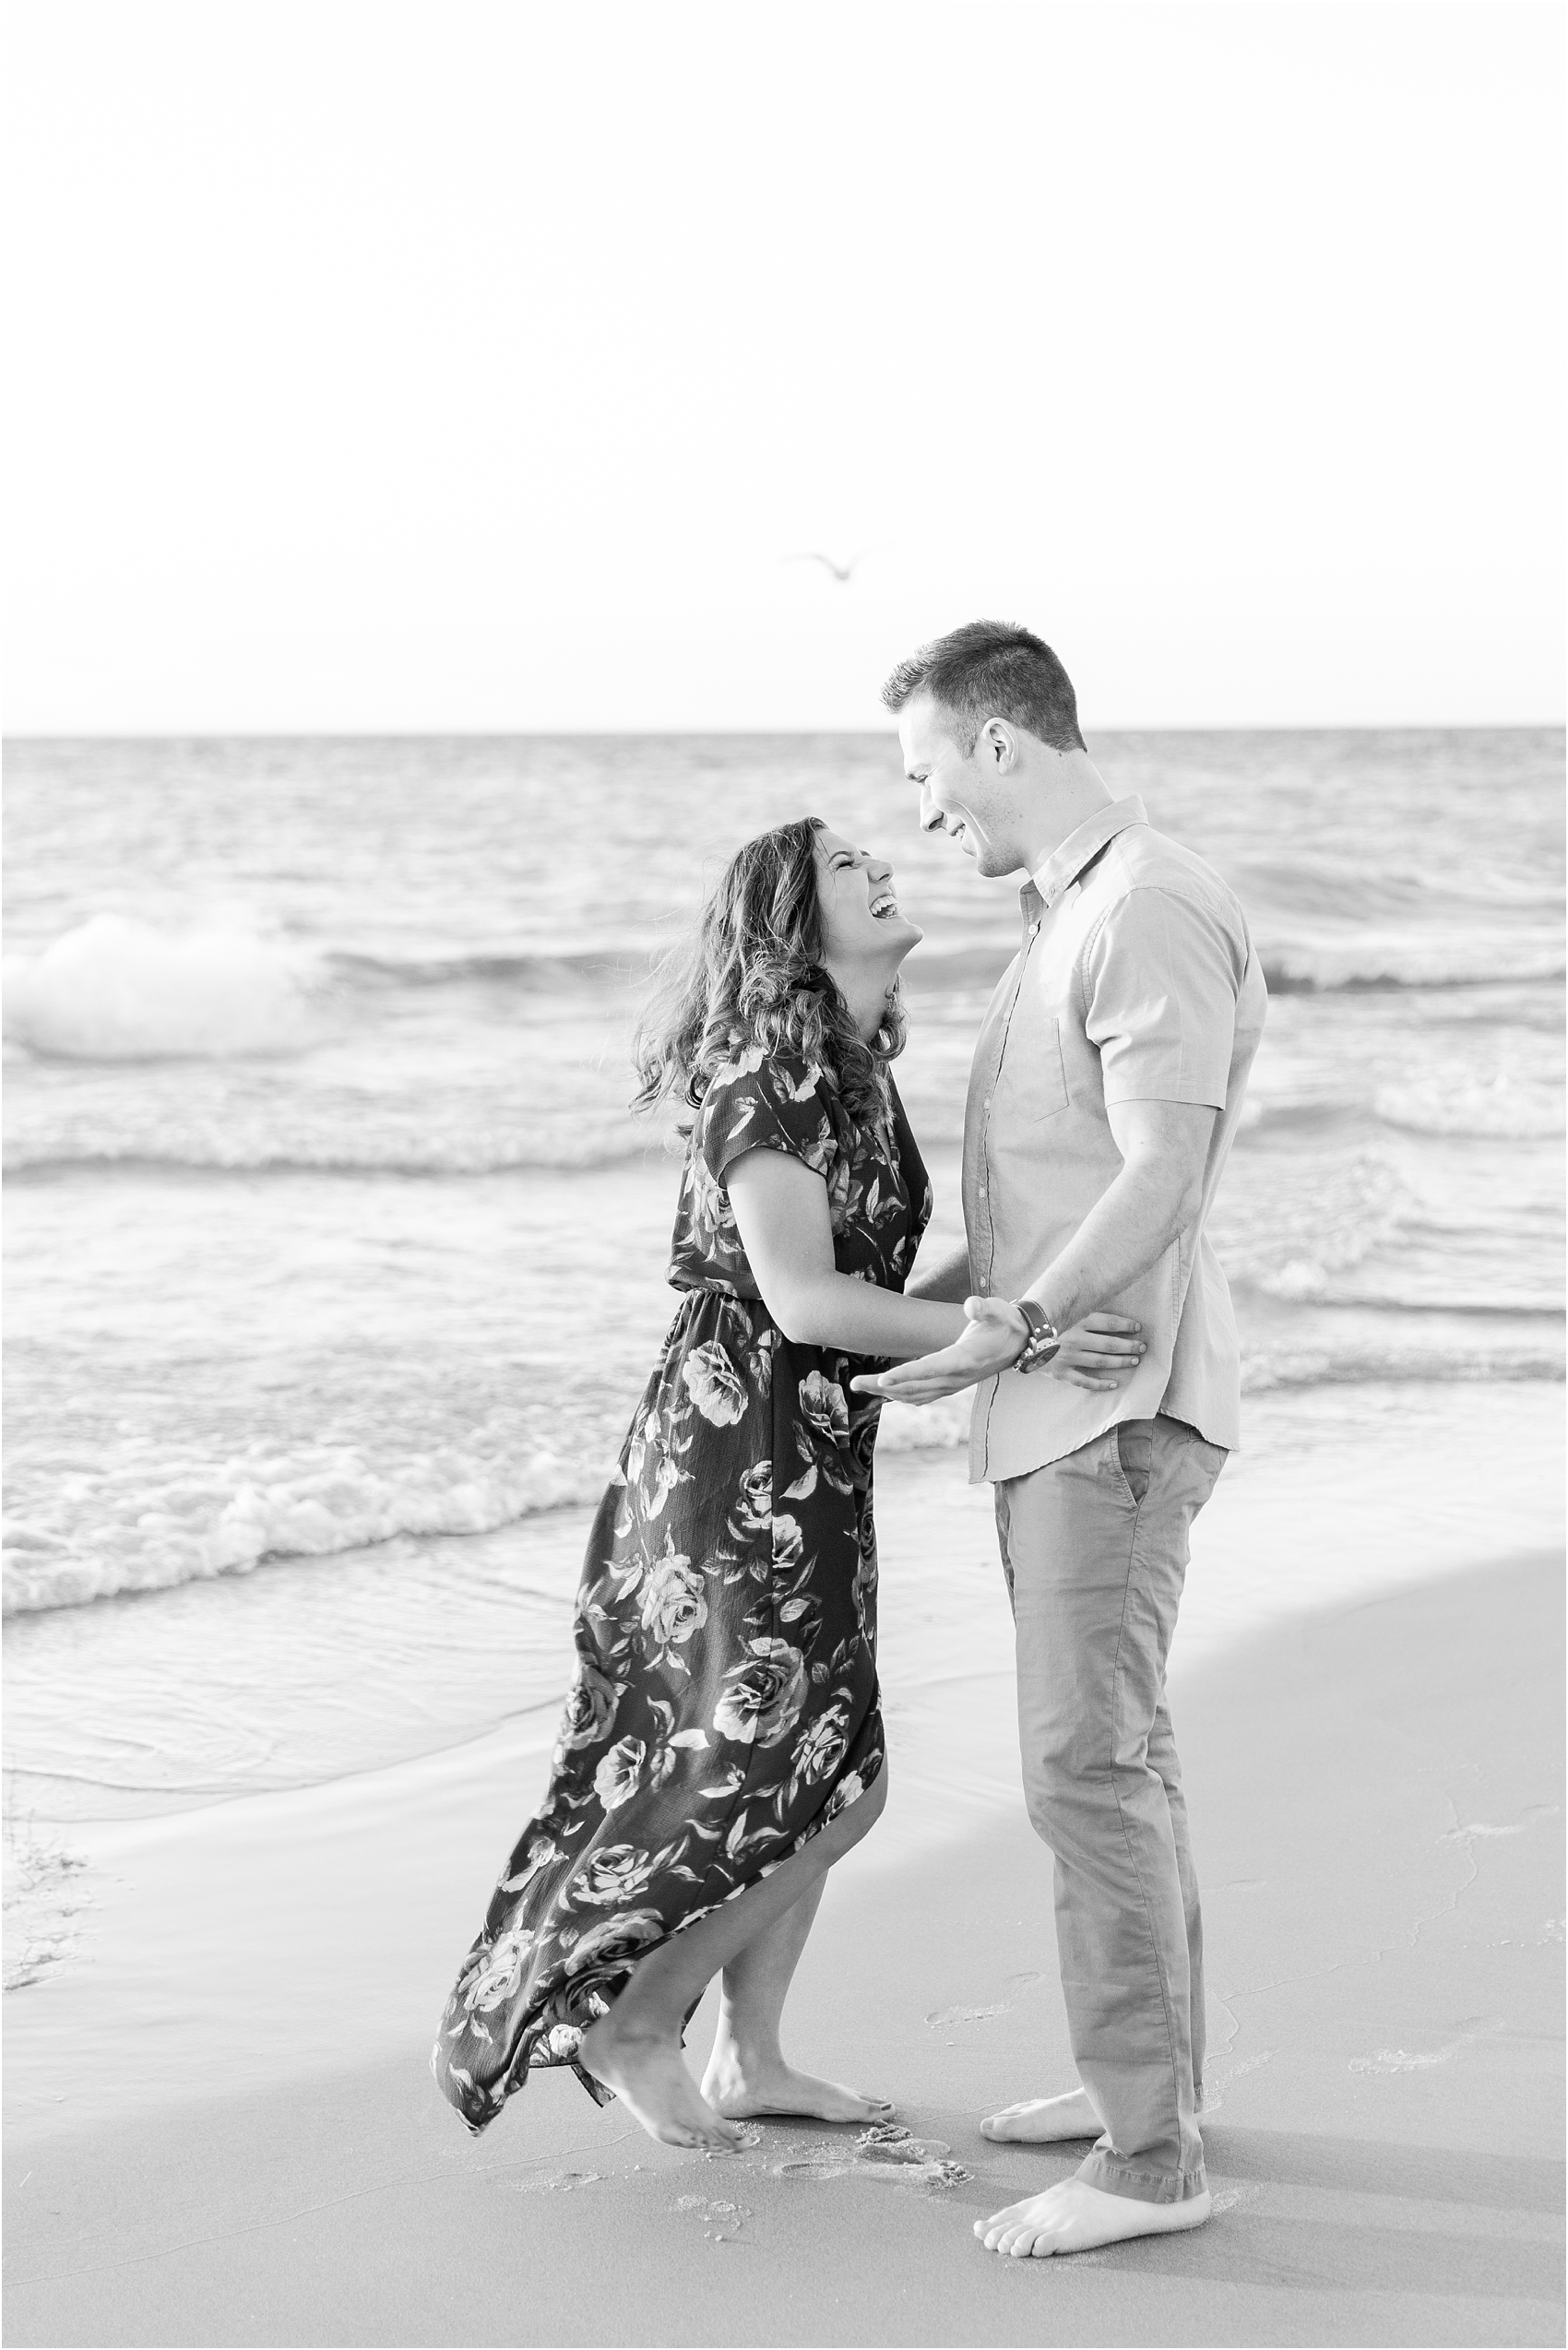 candid-end-of-summer-sunset-engagement-photos-at-silver-beach-in-st-joseph-mi-by-courtney-carolyn-photography_0024.jpg